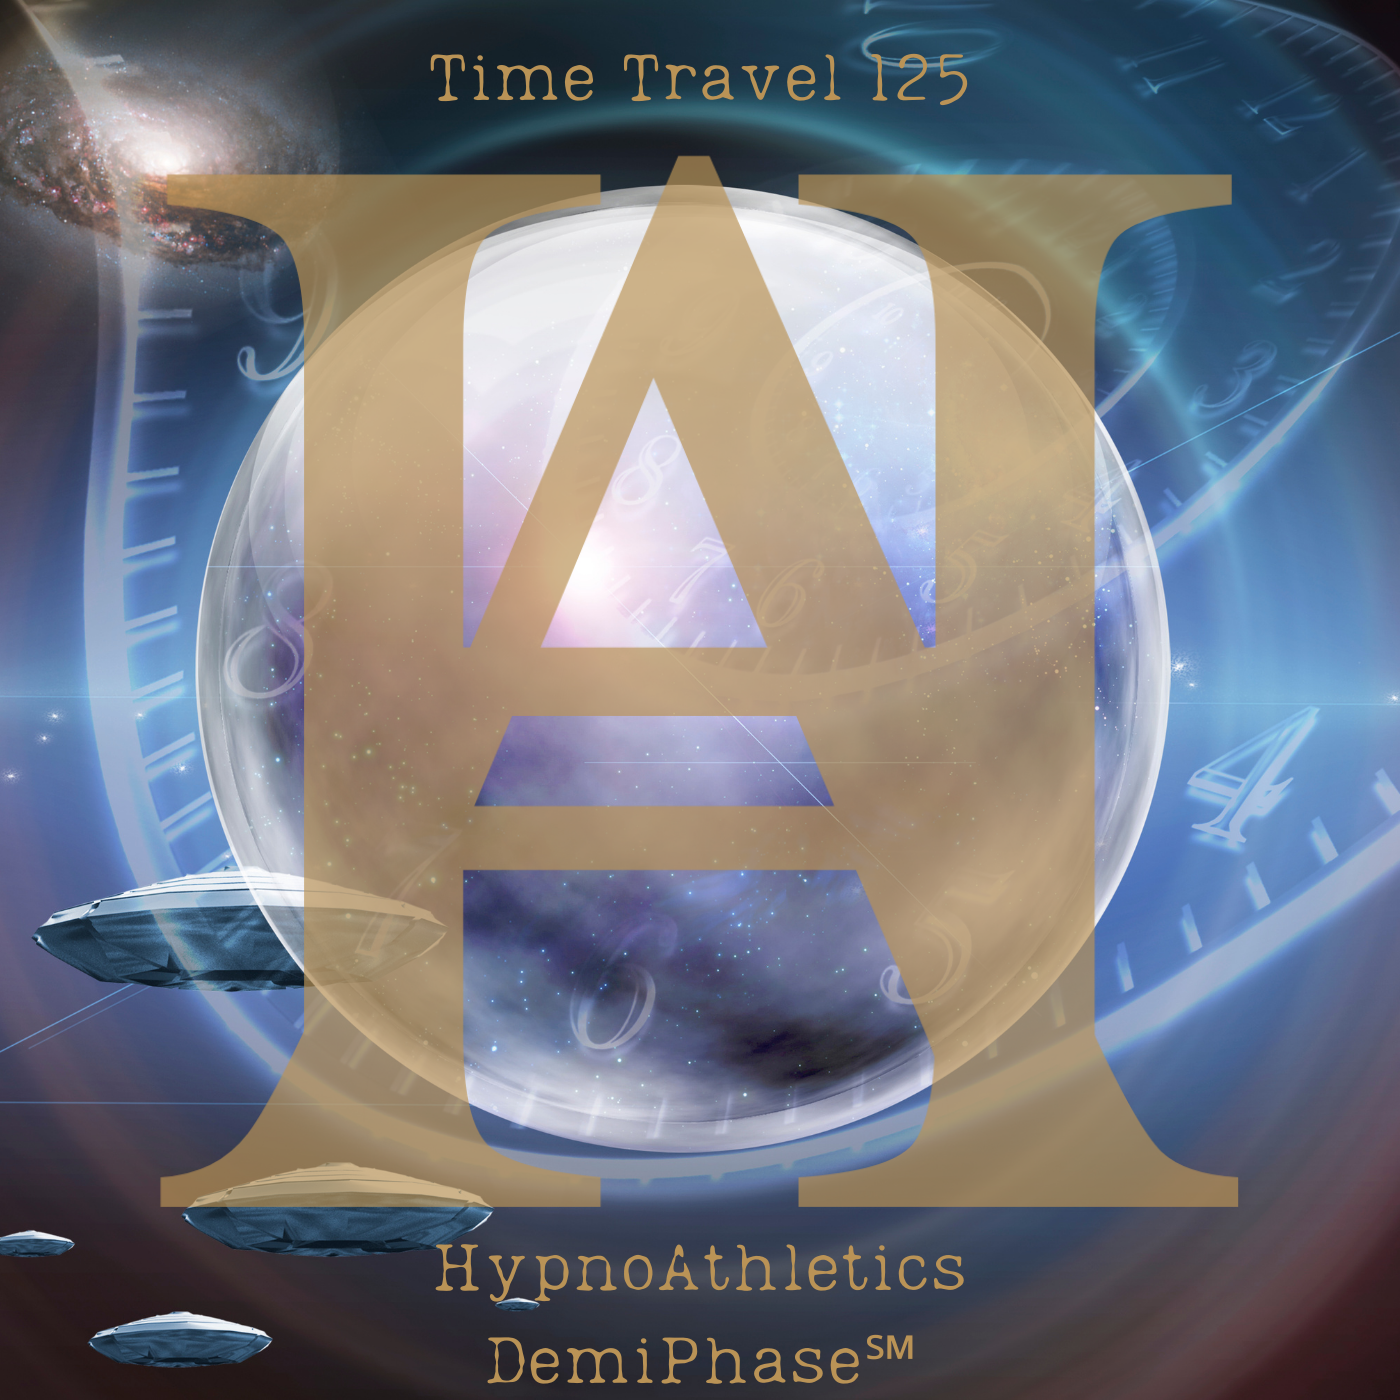 How To Time-Travel Using Hypnosis And Sound Waves